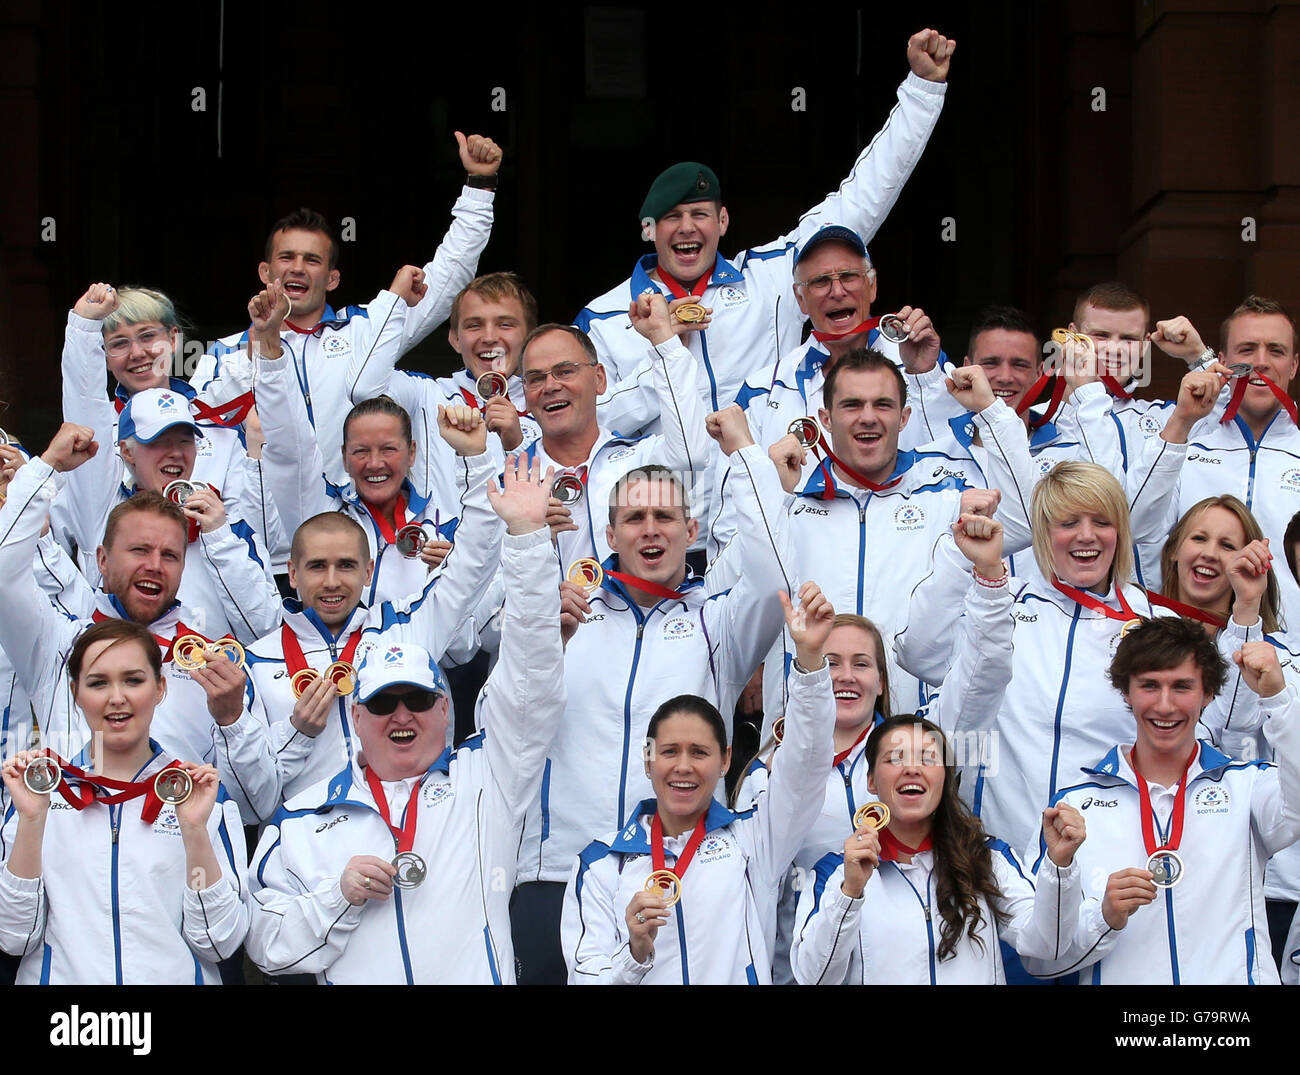 Sport - Team Scotland Commonwealth Games Parade - Glasgow ...